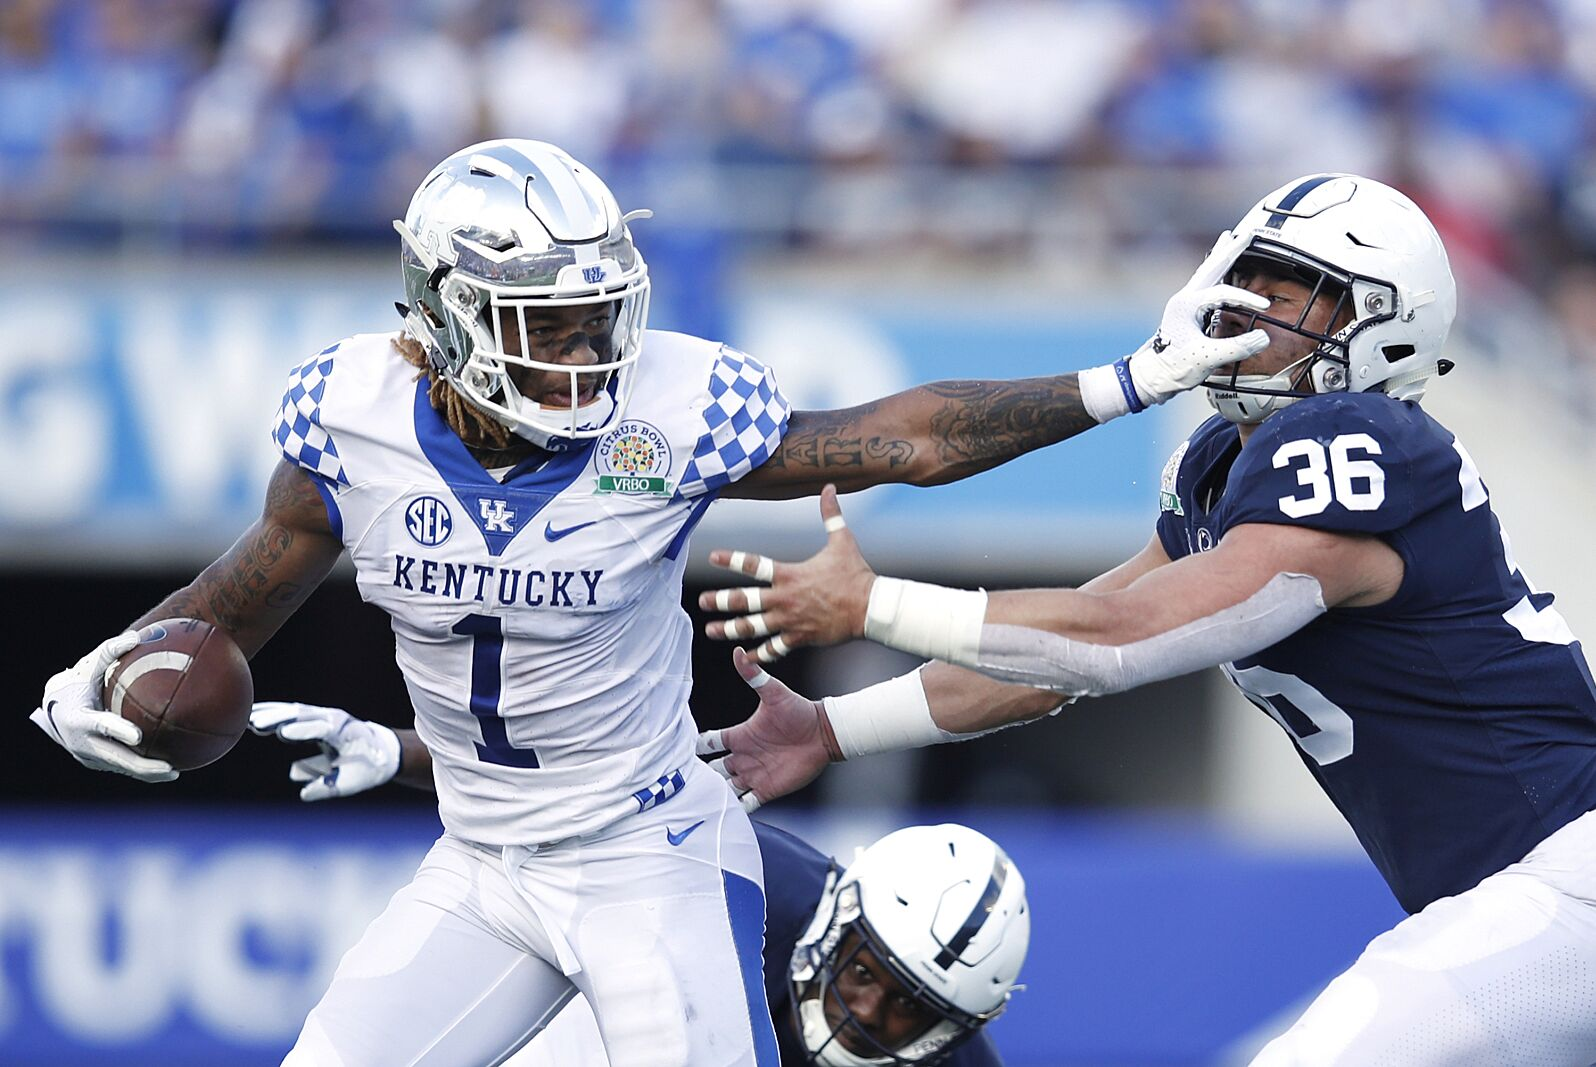 Kentucky Football Looks to Continue Success in 2019 after ...